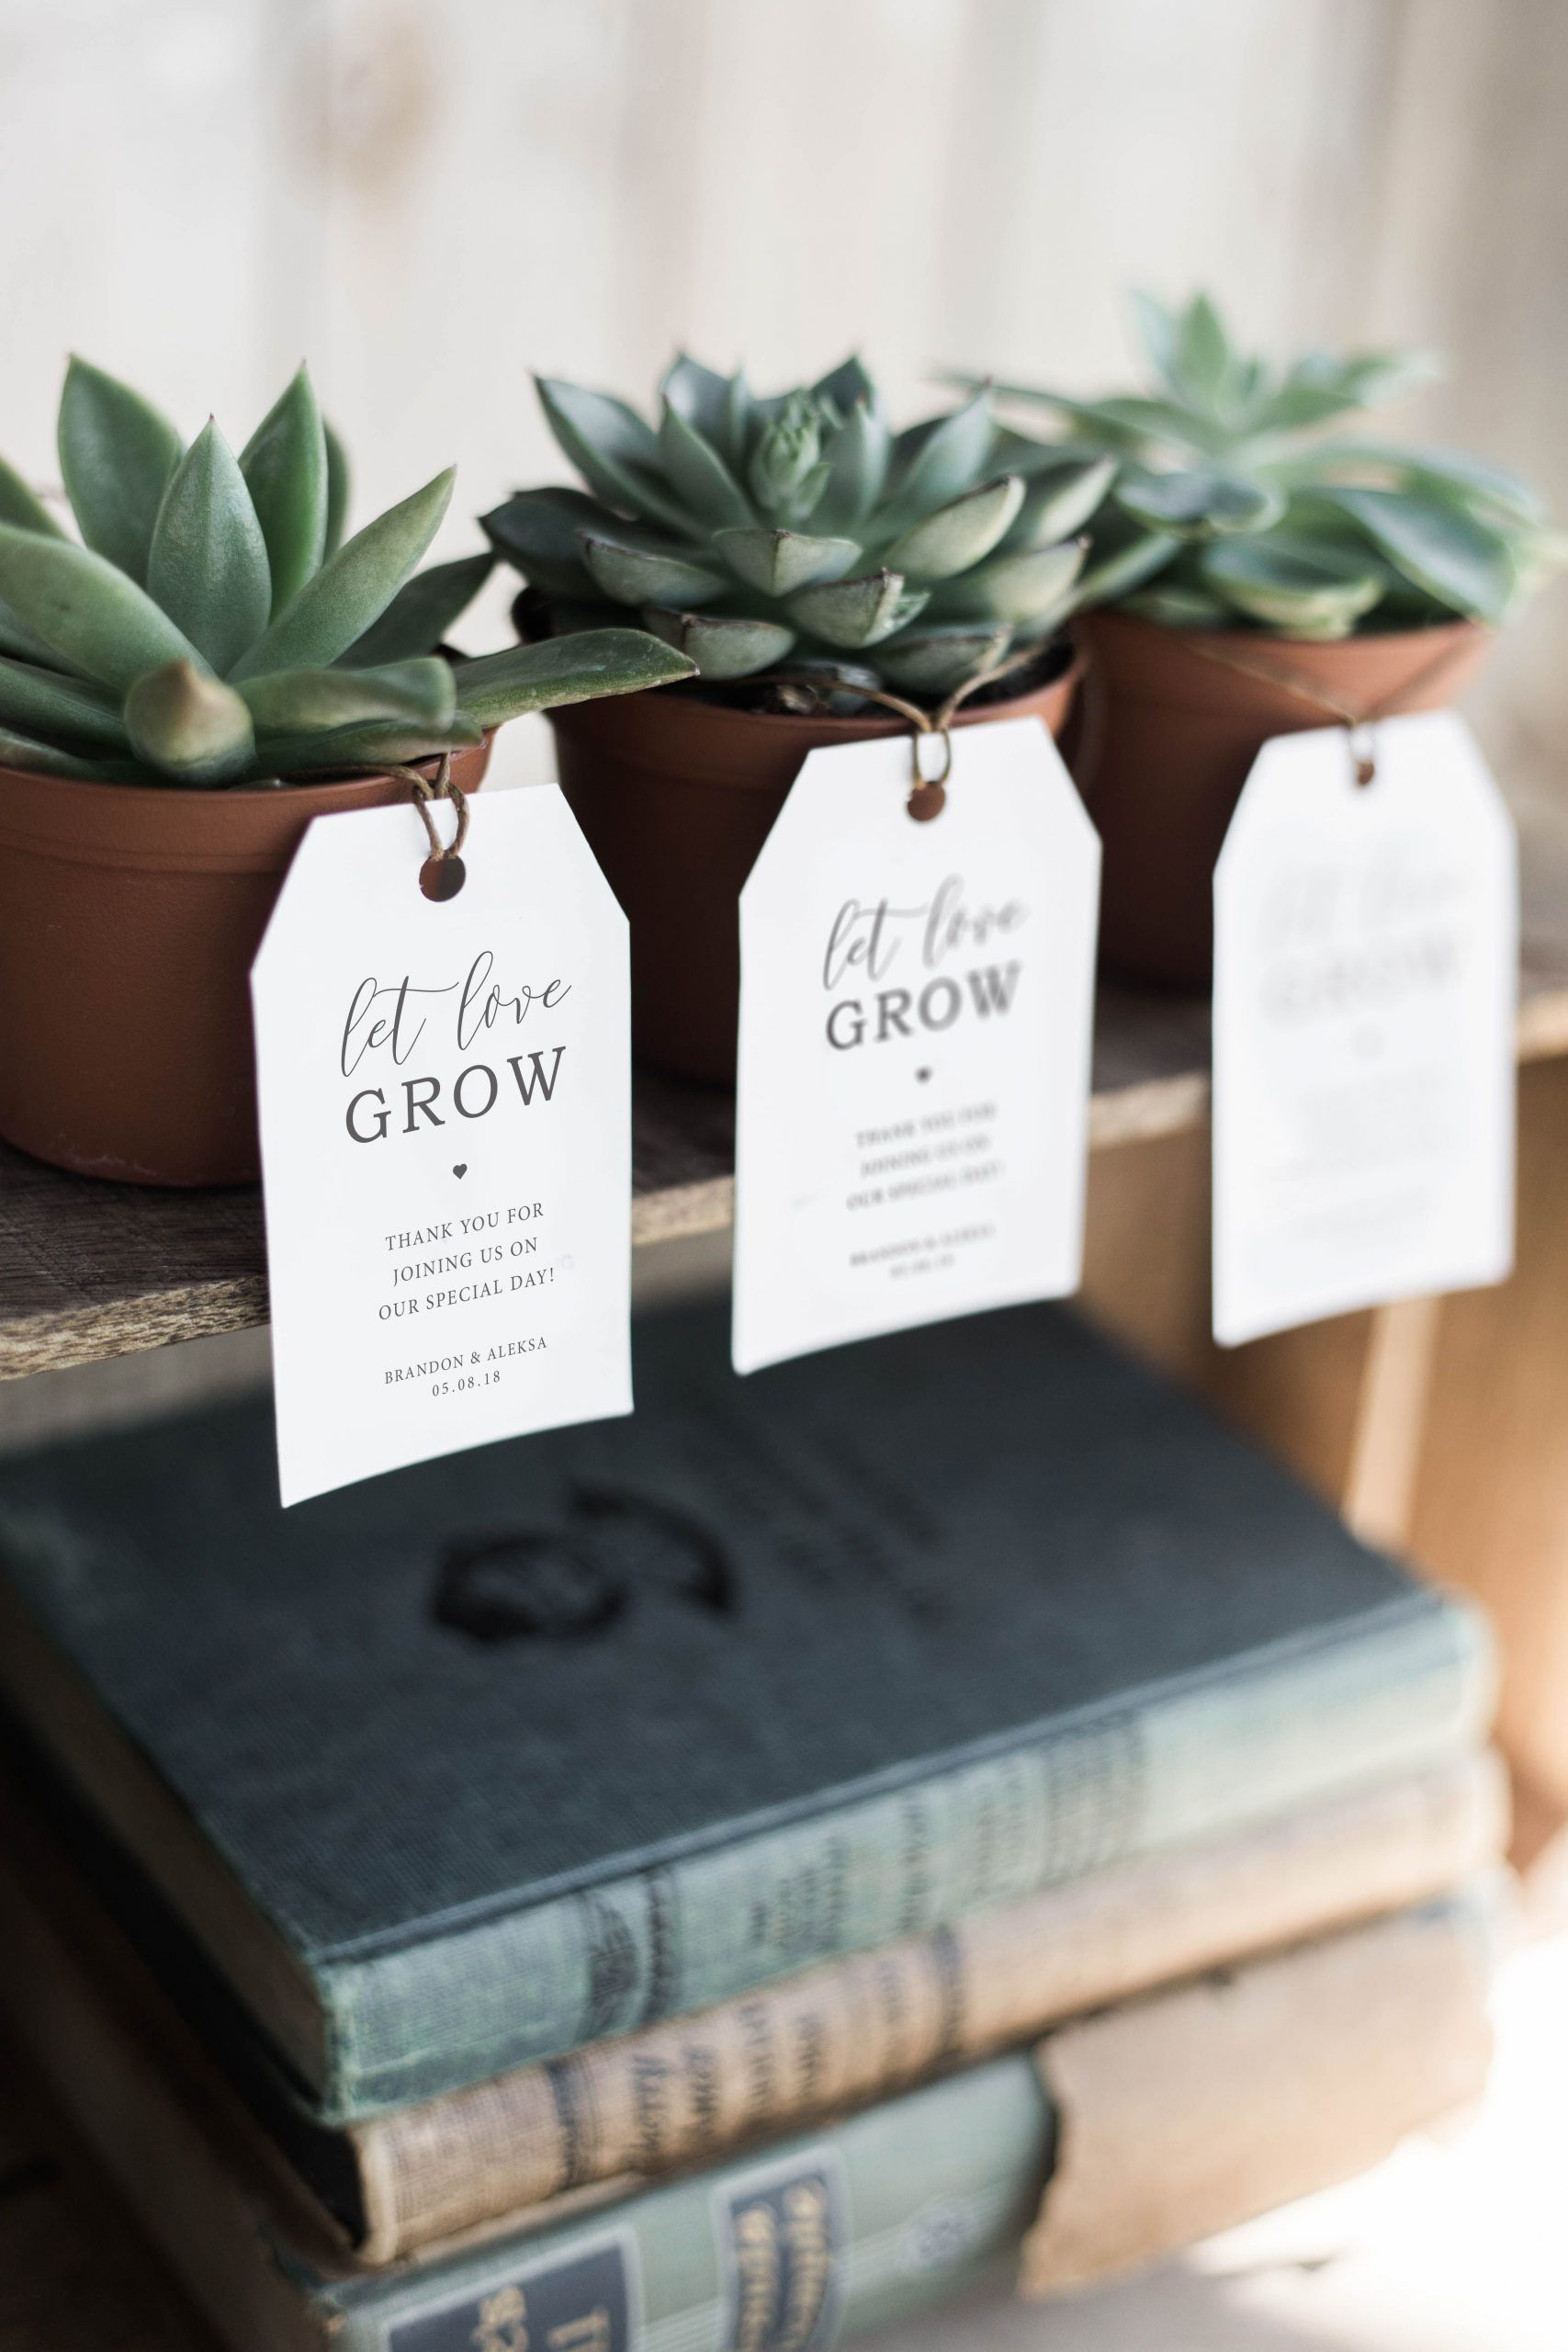 Printable Wedding Favor Tag - Let Love Grow - Plant Wedding Favor / Succulent Wedding Favor -Rustic Elegance - Rustic Wedding Favors - PTC01#elegance #favor #favors #grow #love #plant #printable #ptc01 #rustic #succulent #tag #wedding